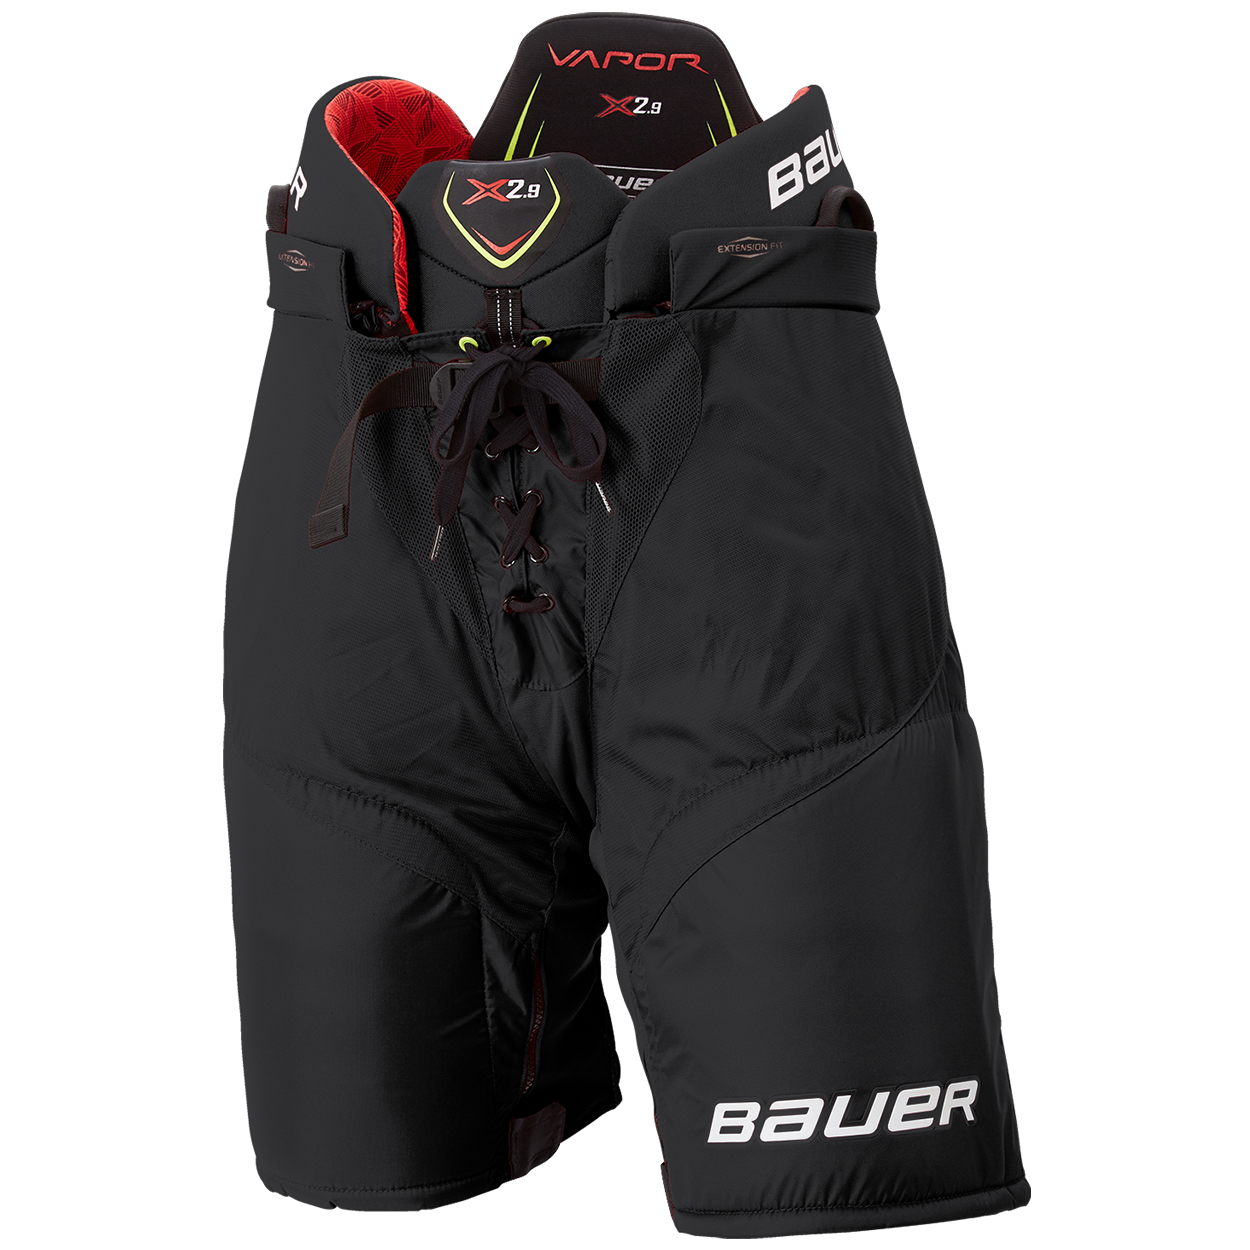 VAPOR X2.9 Pants Junior,Schwarz,Medium